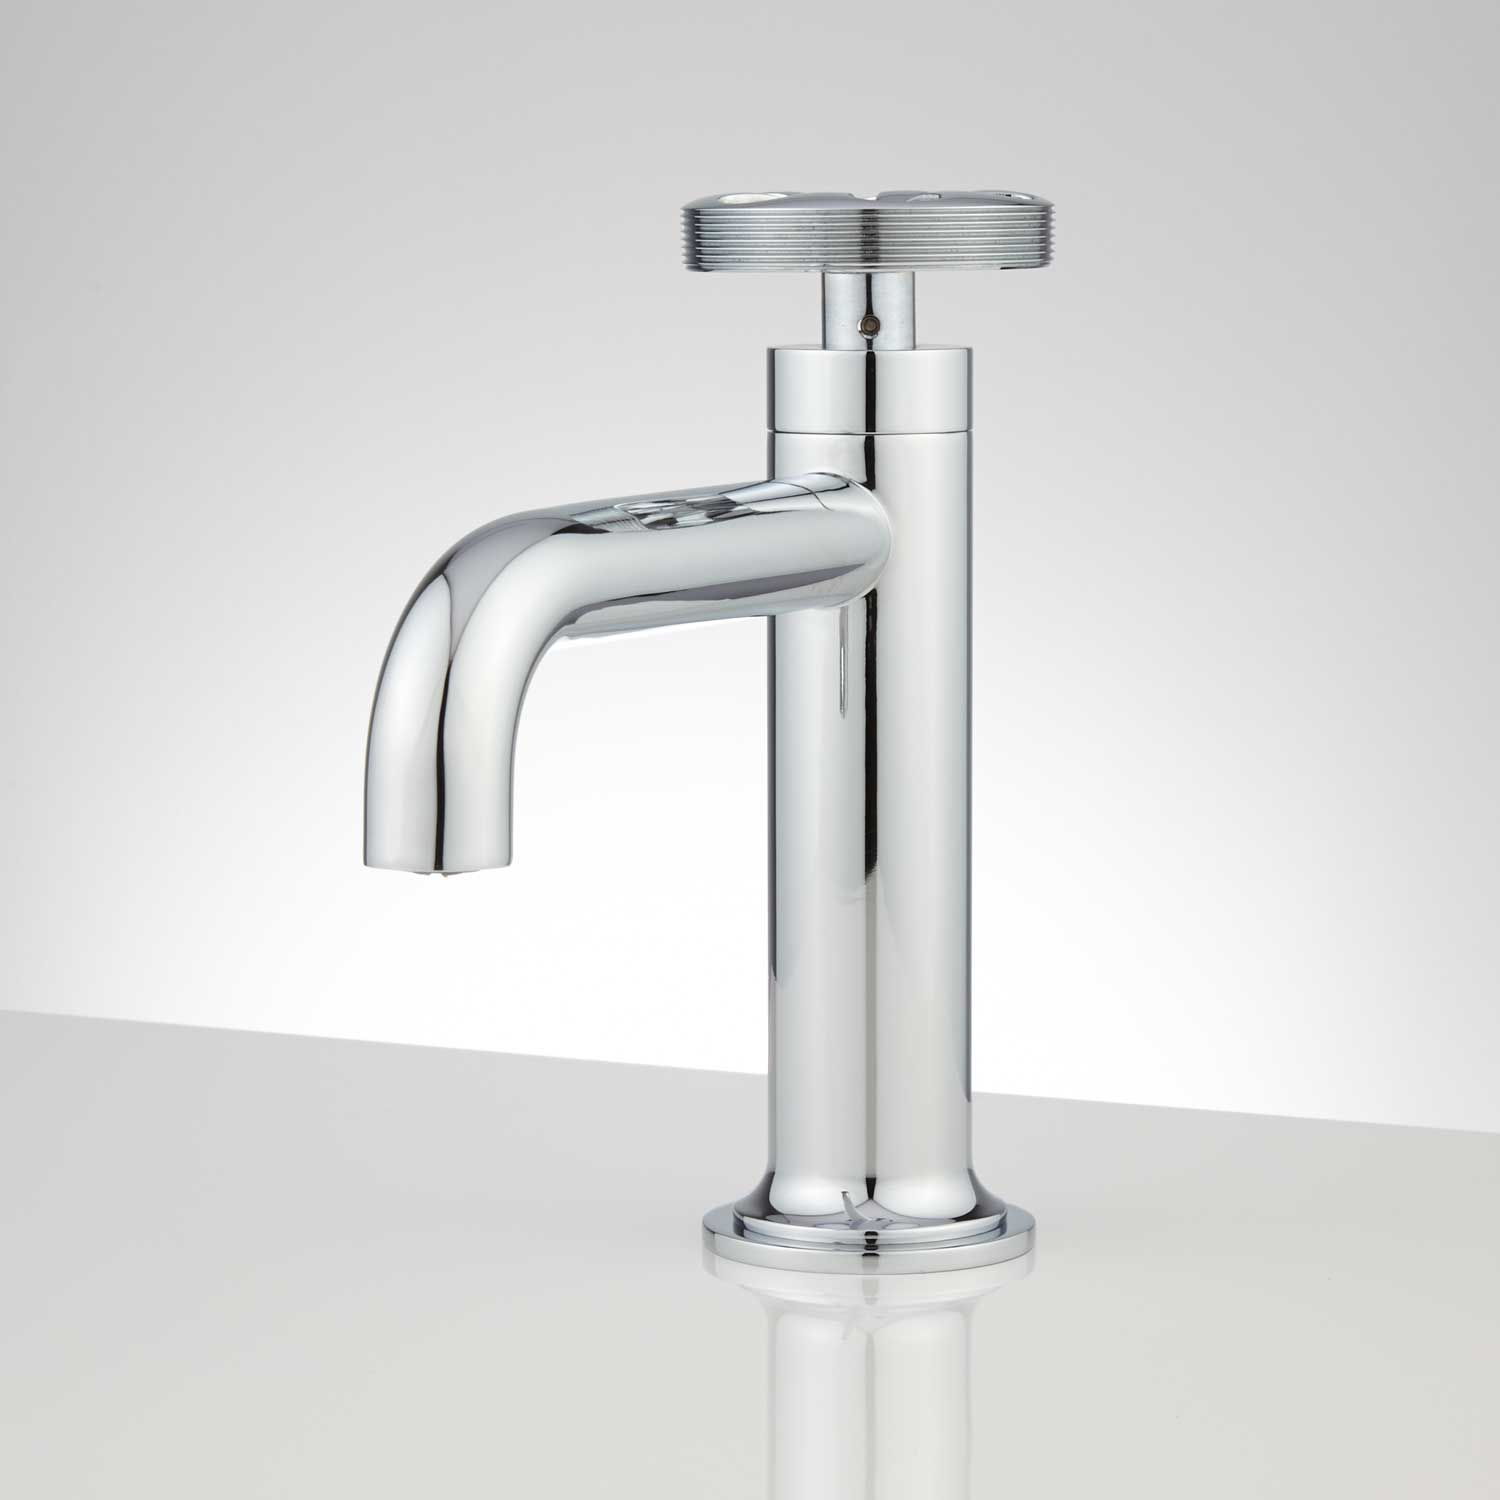 Edison Single Hole Brass Bathroom Faucet with Pop-Up Drain | Brass ...